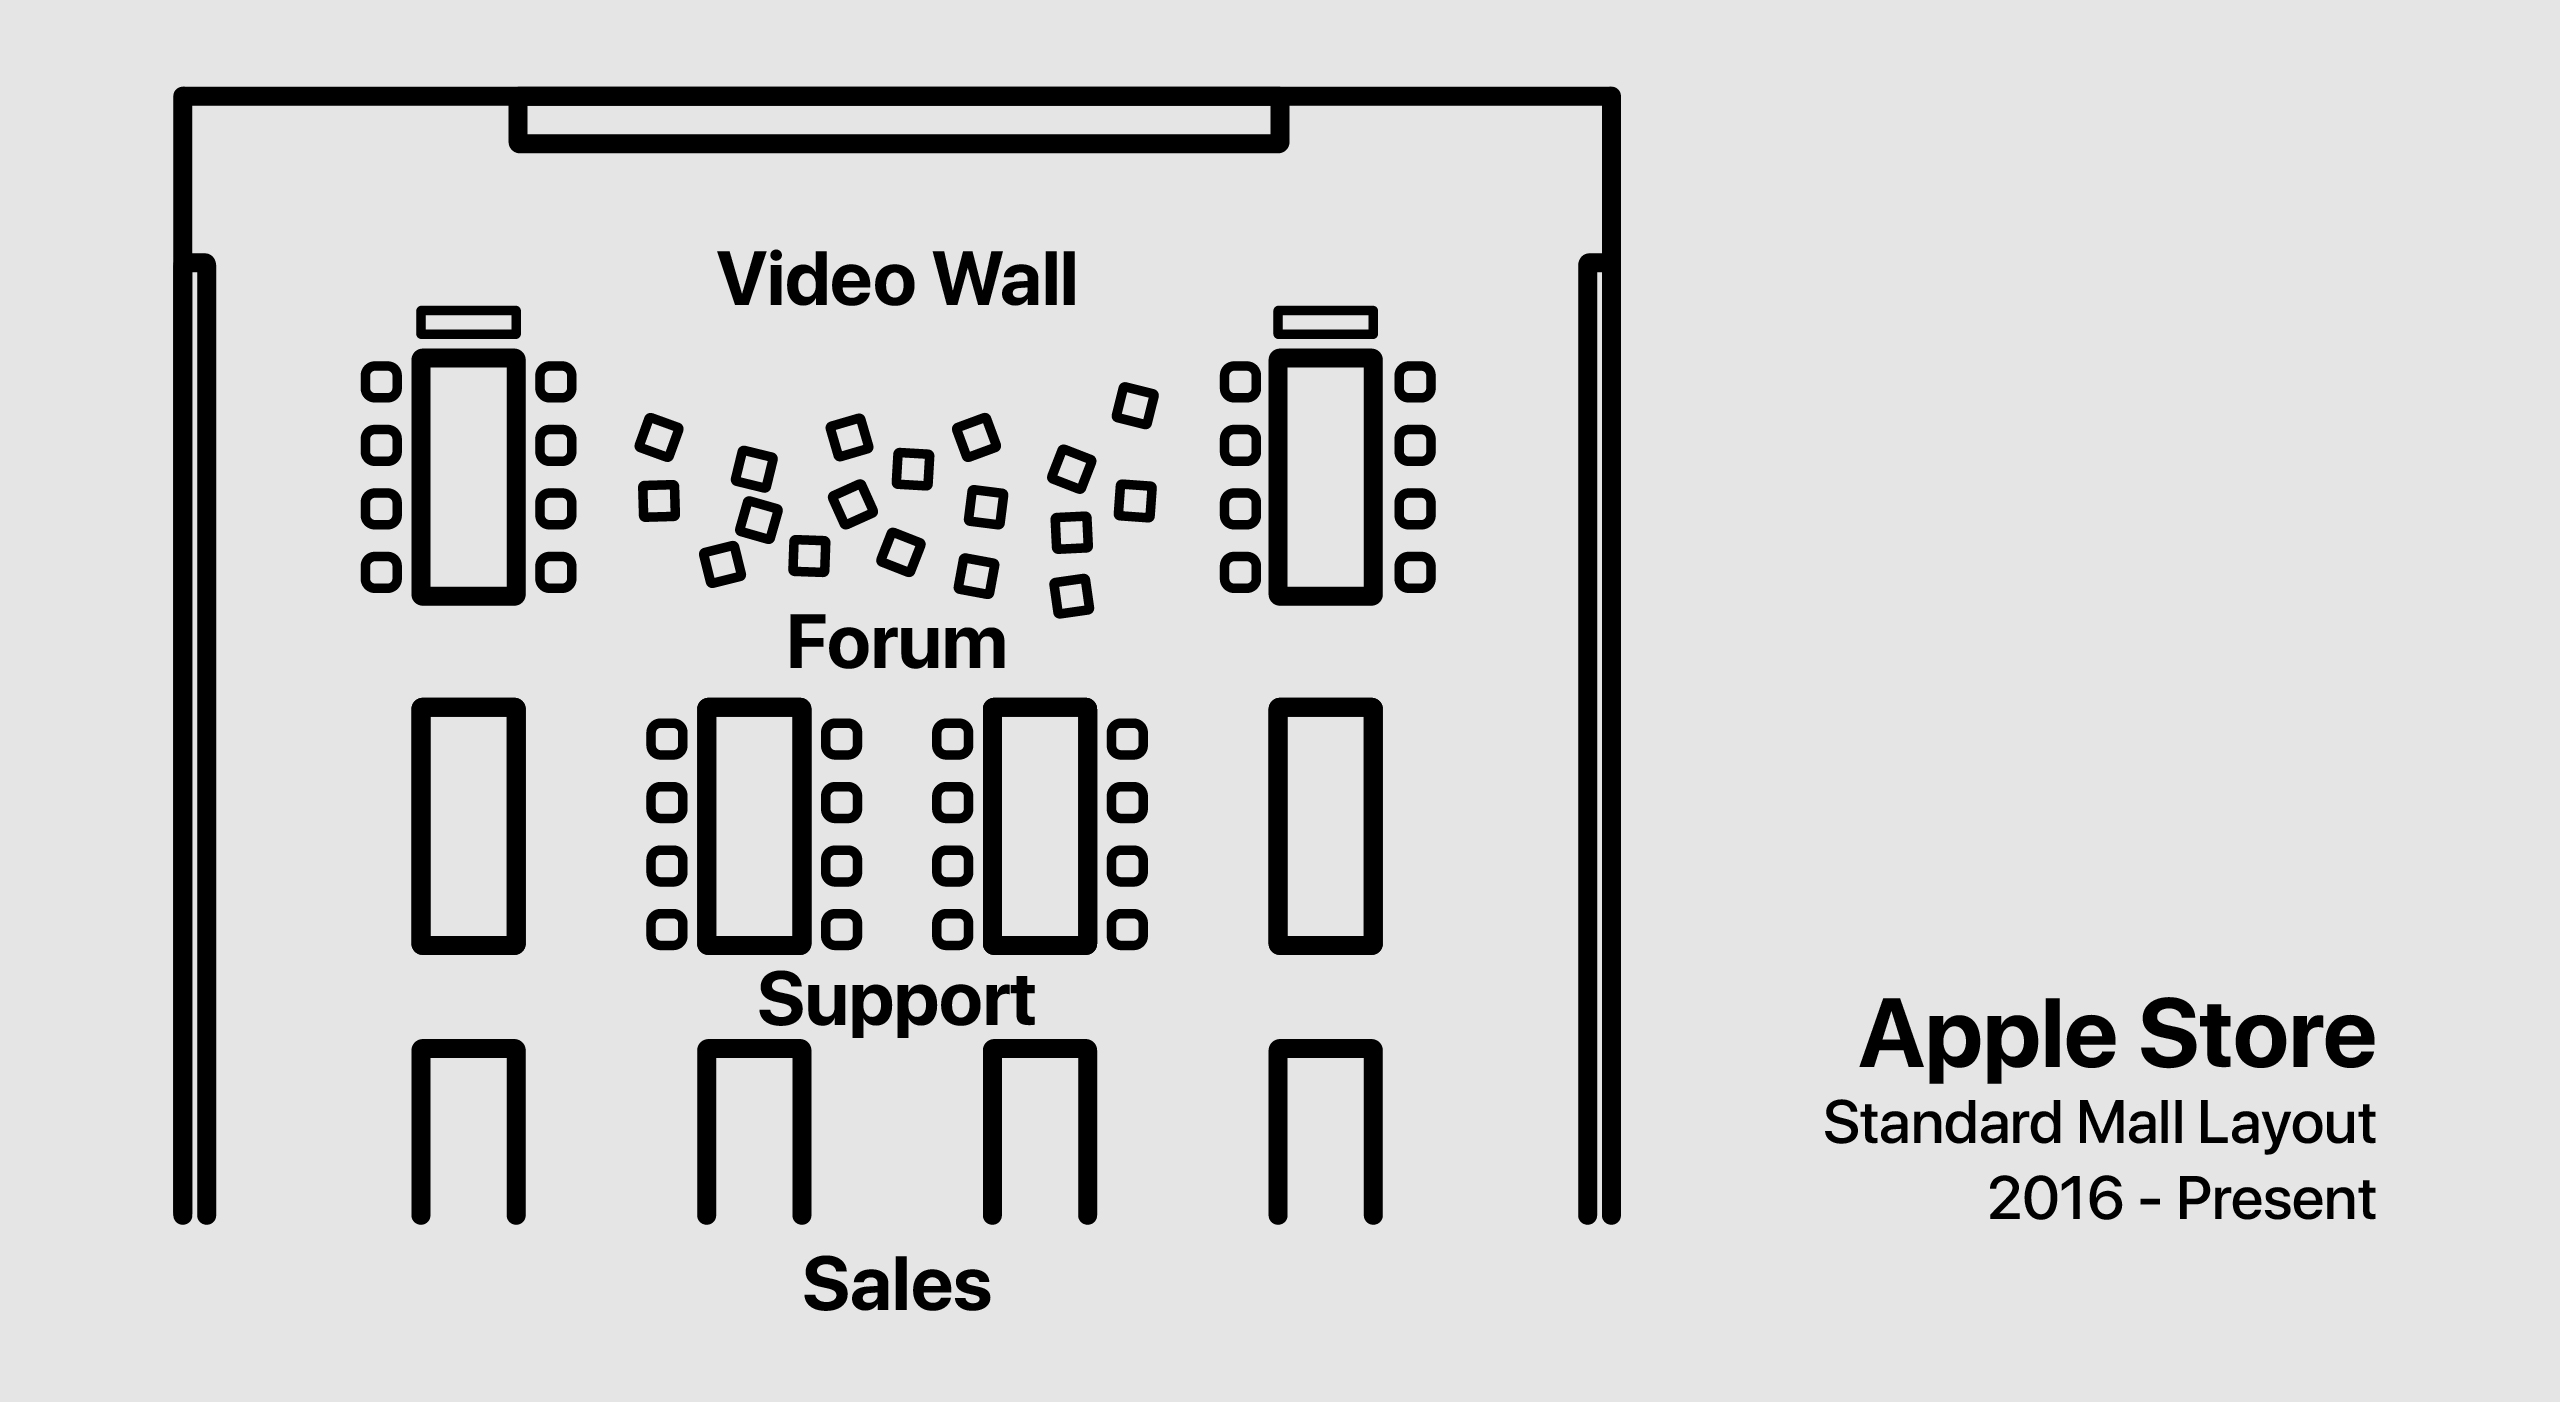 Standard Apple Store Mall Layout Today at Apple Year in Review